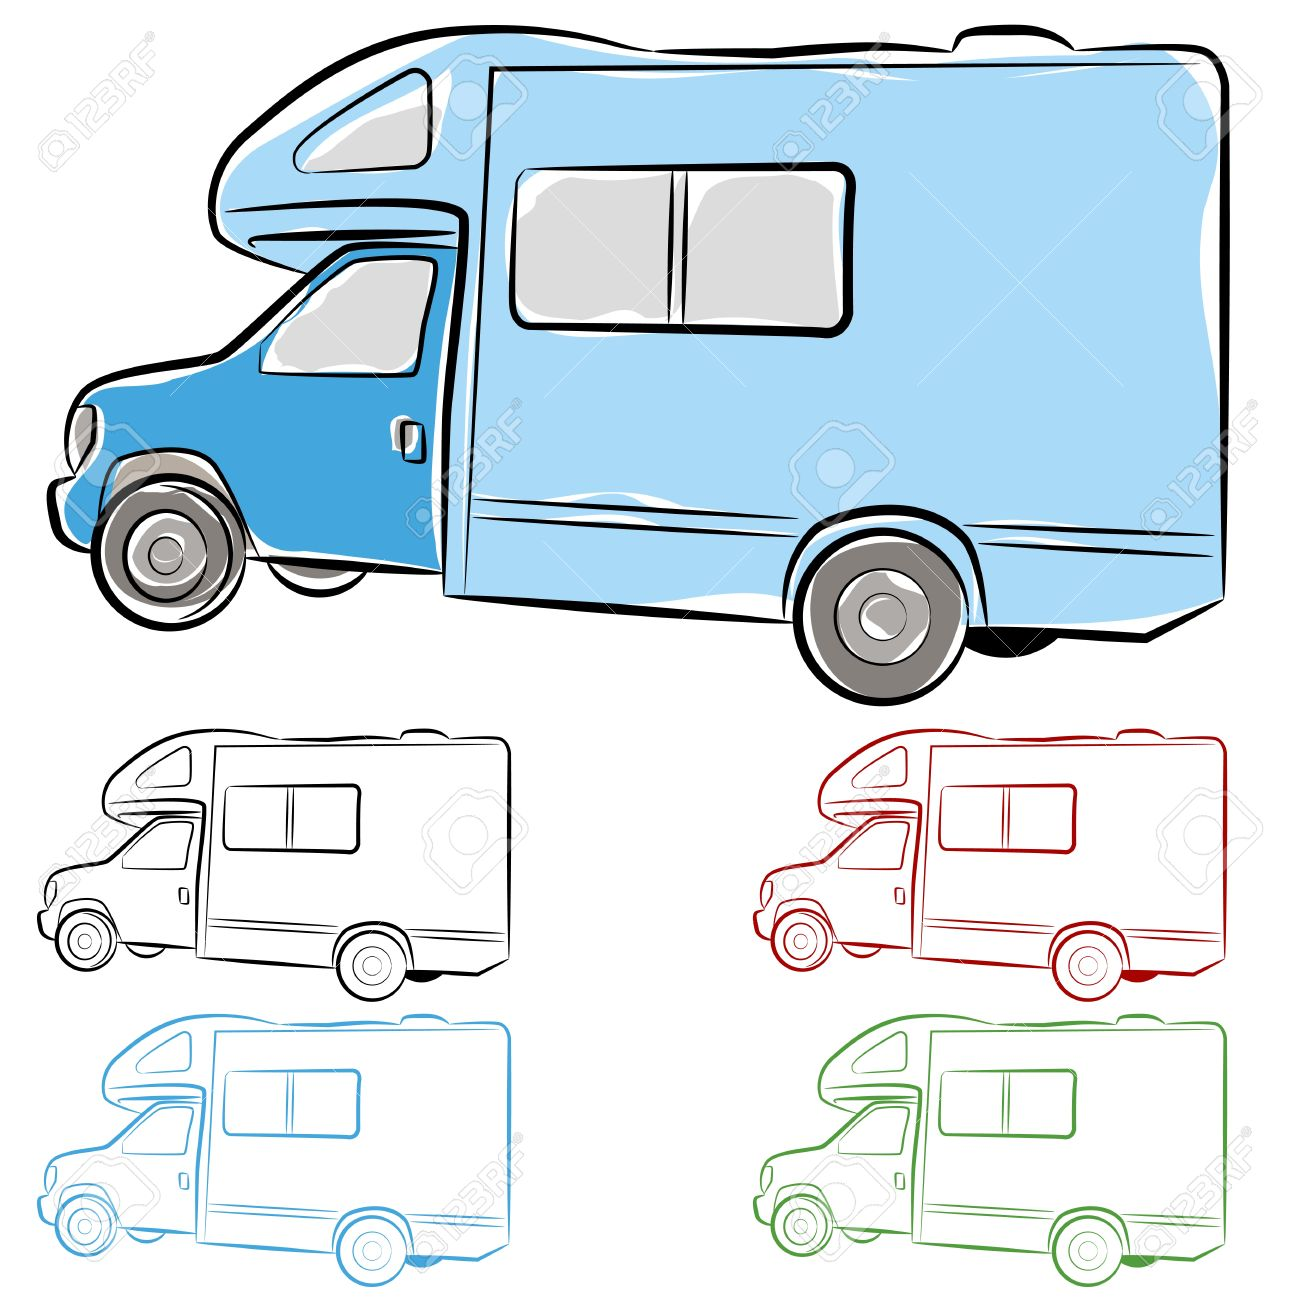 1300x1300 An Image Of An Rv Camper Drawing. Royalty Free Cliparts, Vectors